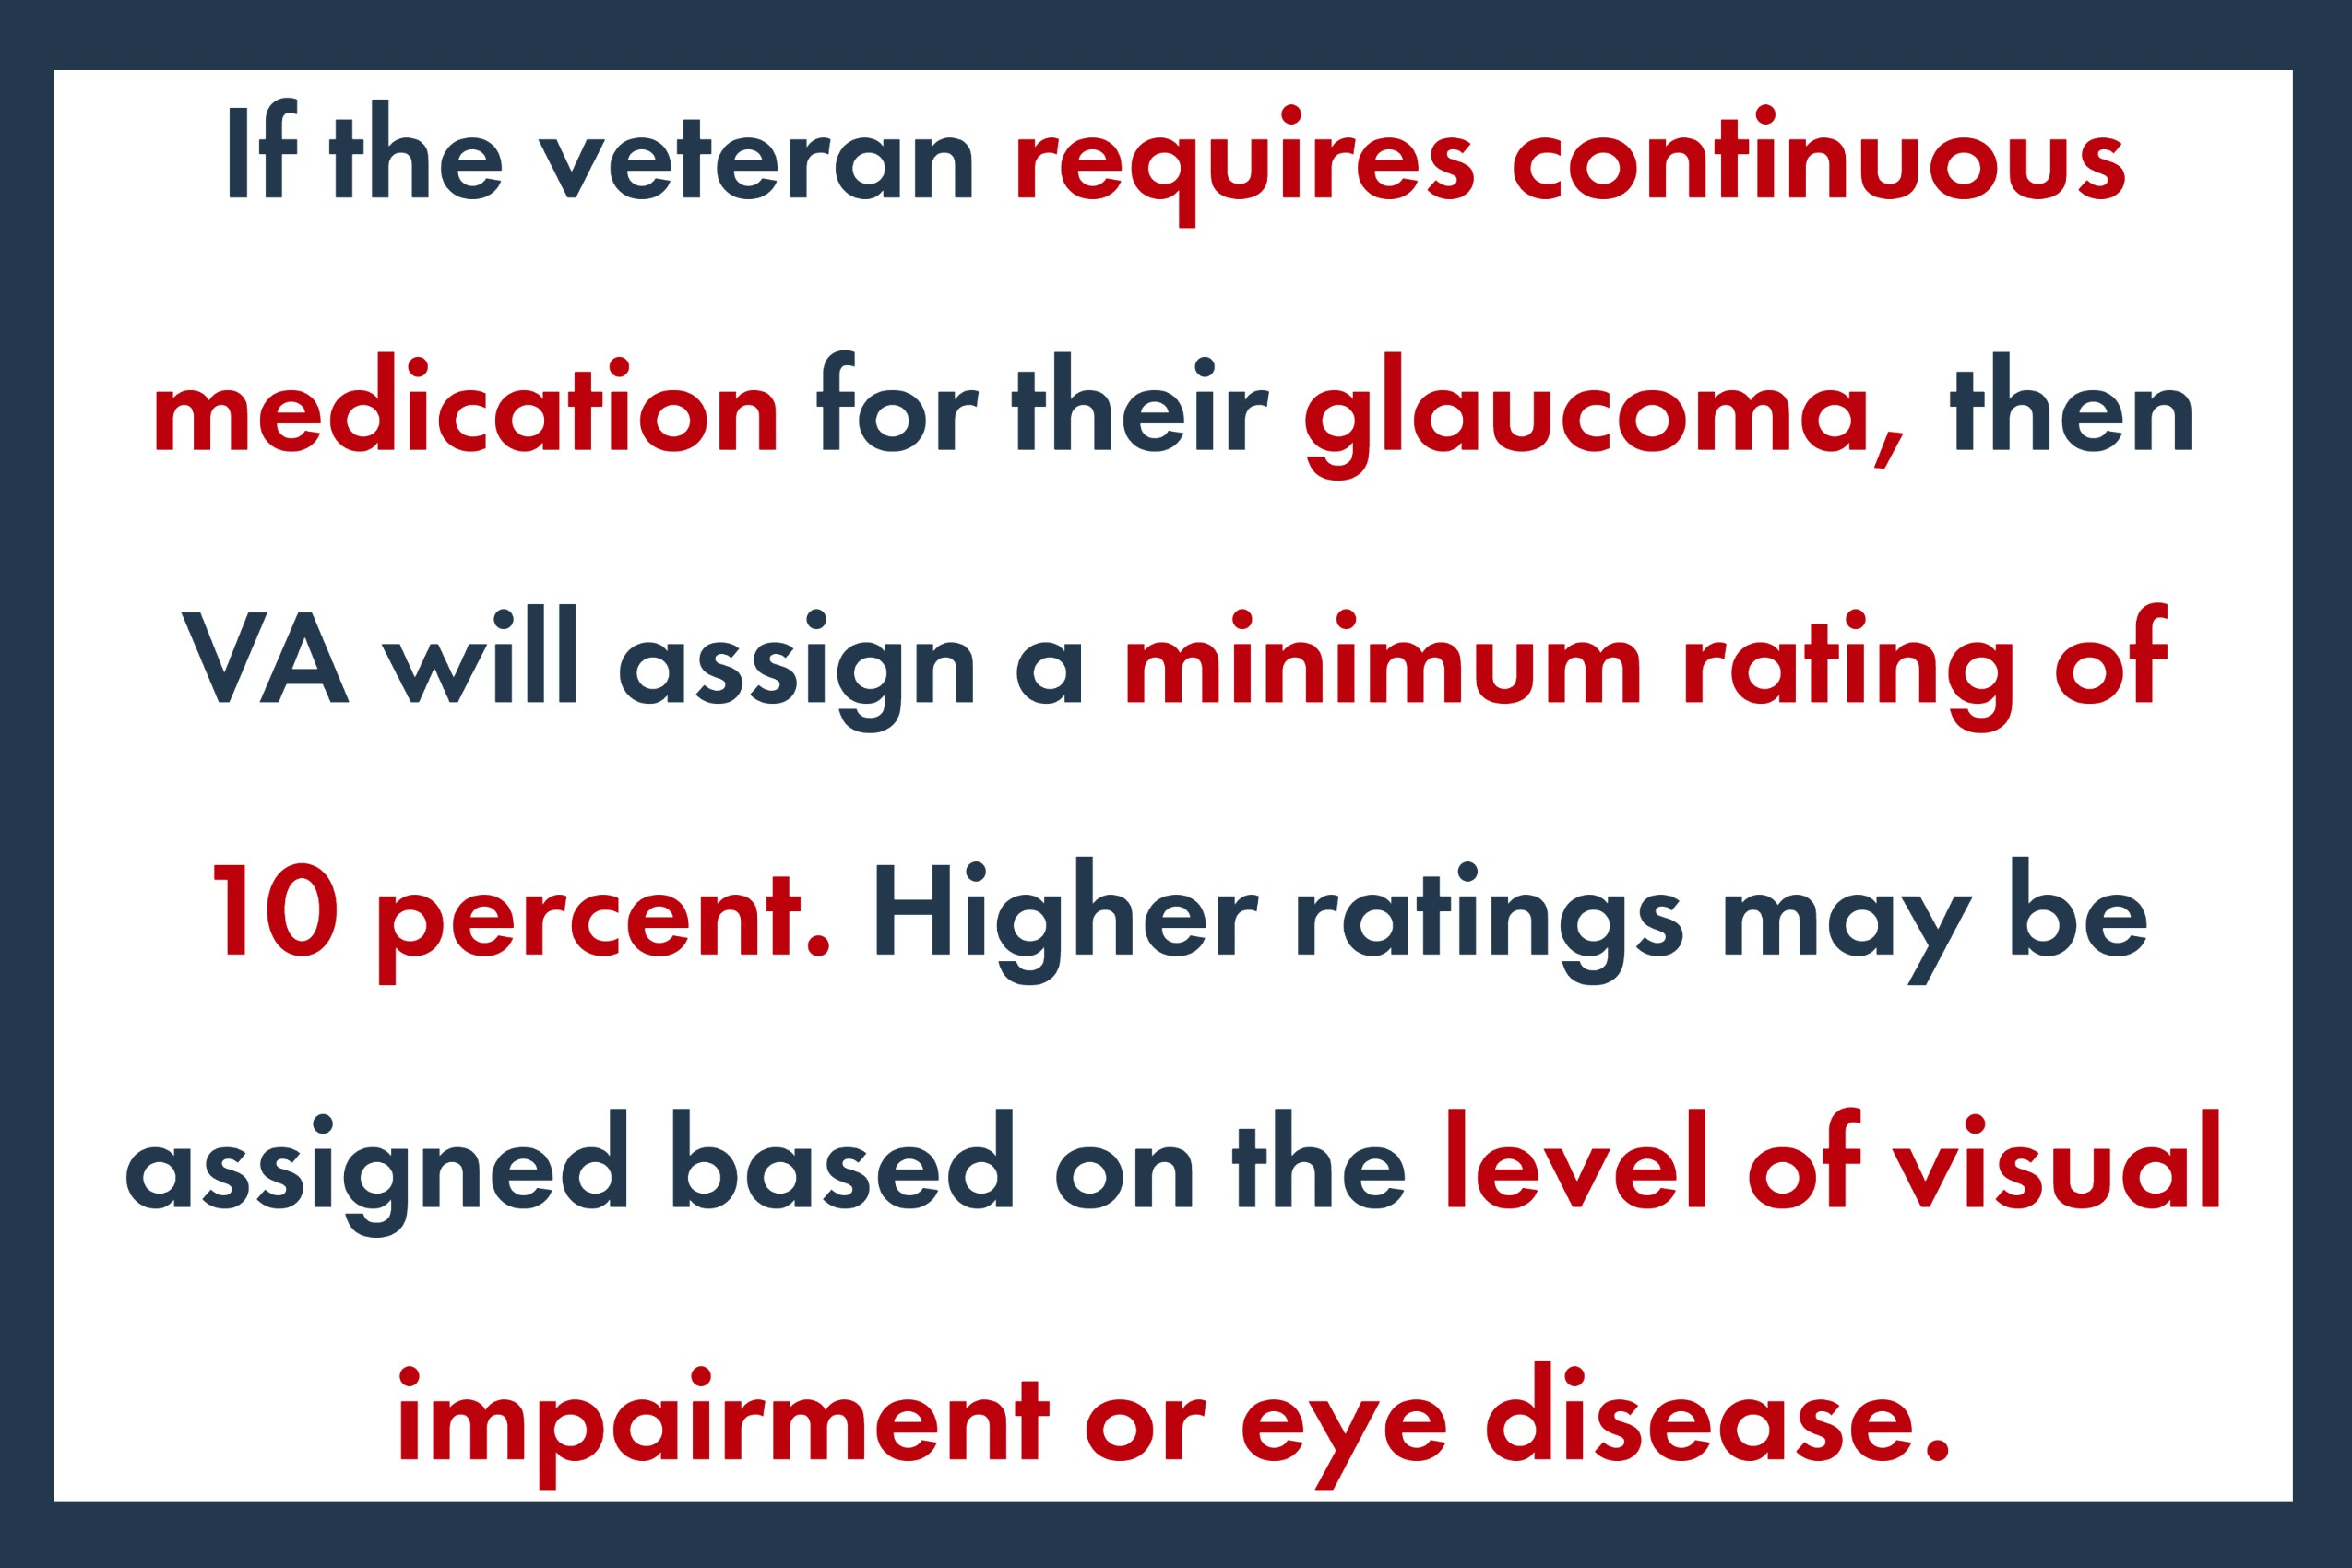 If the veteran requires continuous medication for their glaucoma, then VA will assign a minimum rating of 10 percent. Higher ratings may be assigned based on the level of visual impairment or eye disease.